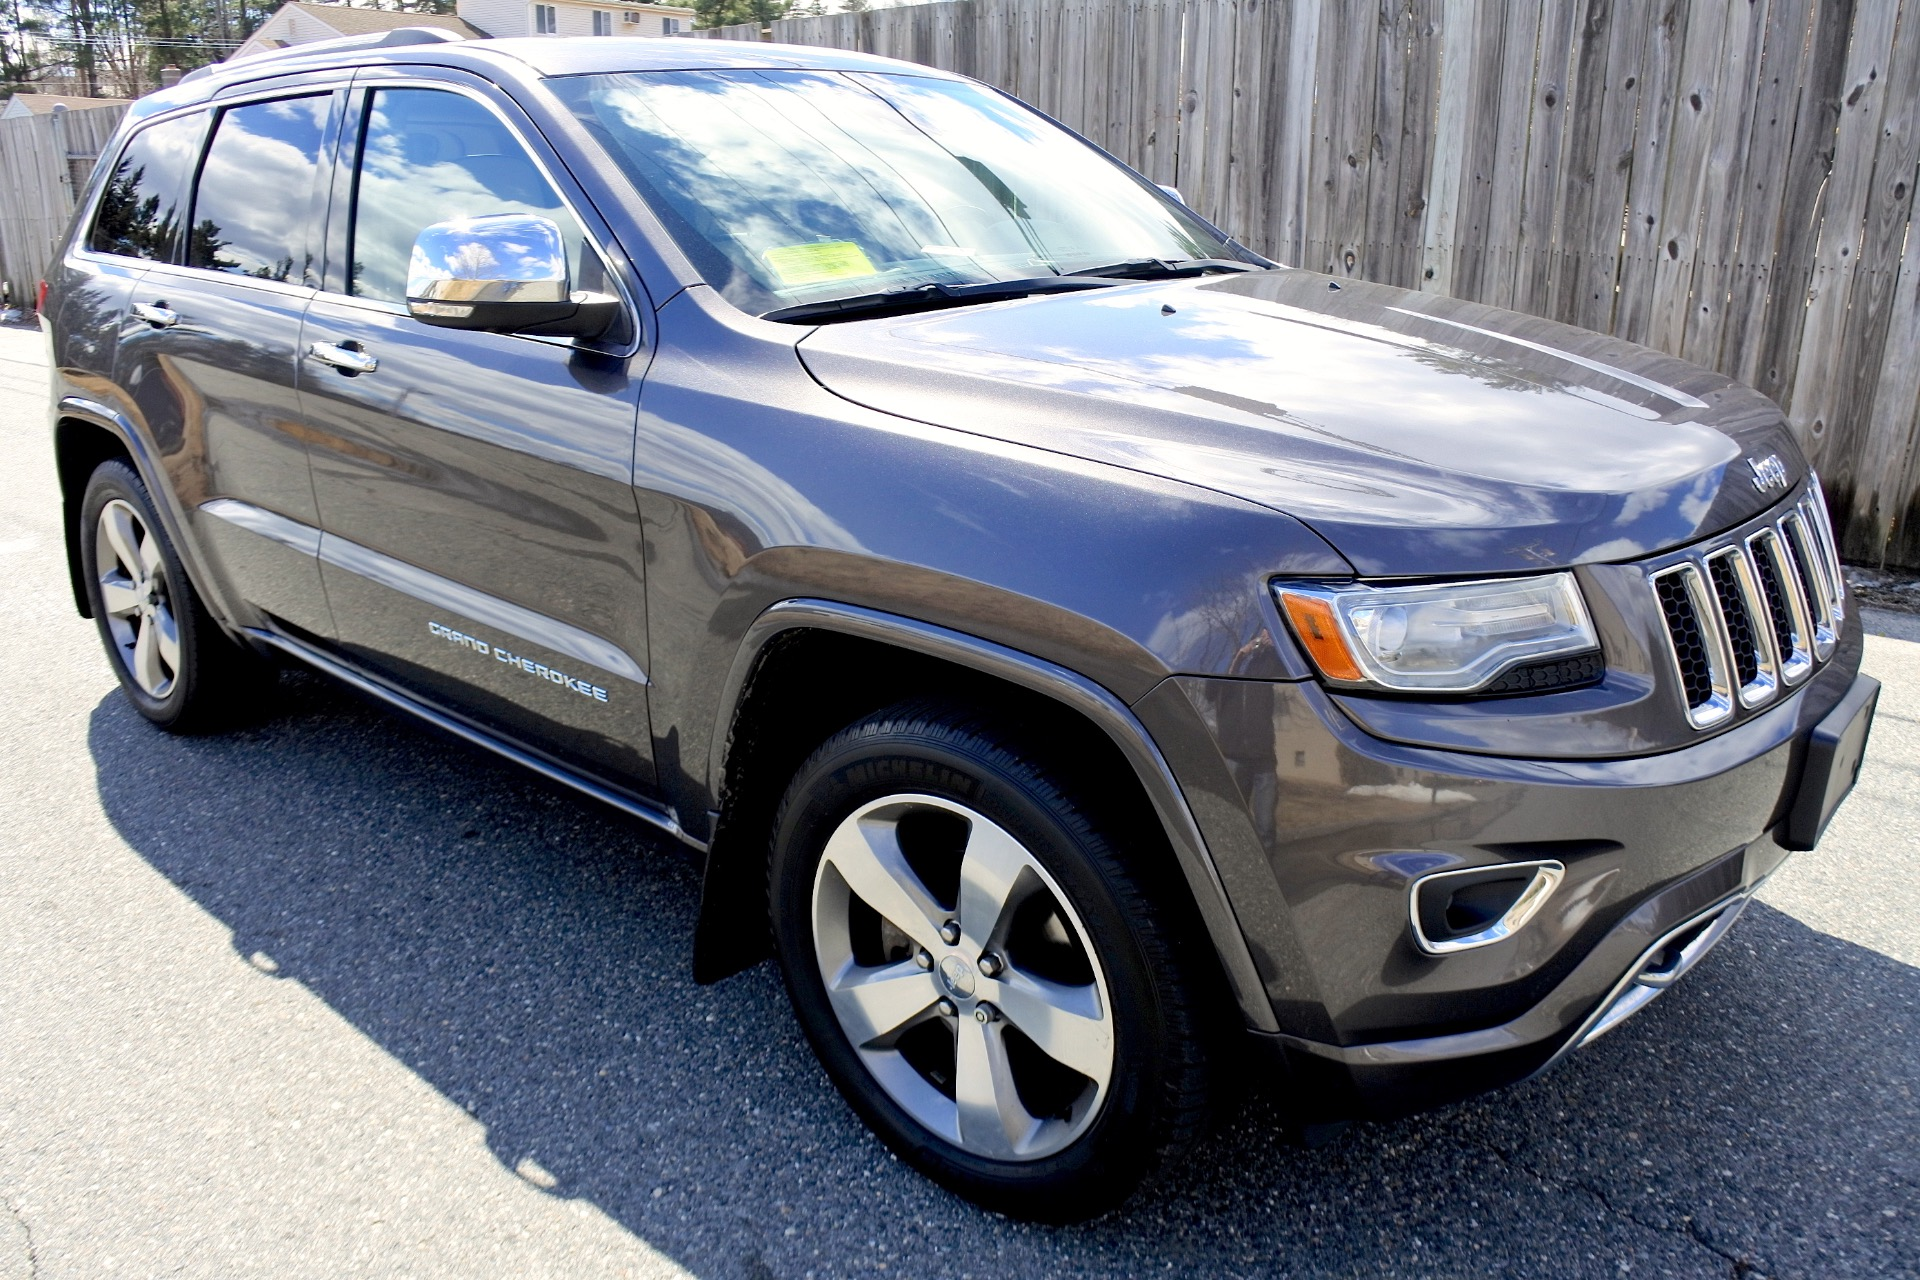 Used 2014 Jeep Grand Cherokee 4WD 4dr Overland Used 2014 Jeep Grand Cherokee 4WD 4dr Overland for sale  at Metro West Motorcars LLC in Shrewsbury MA 7